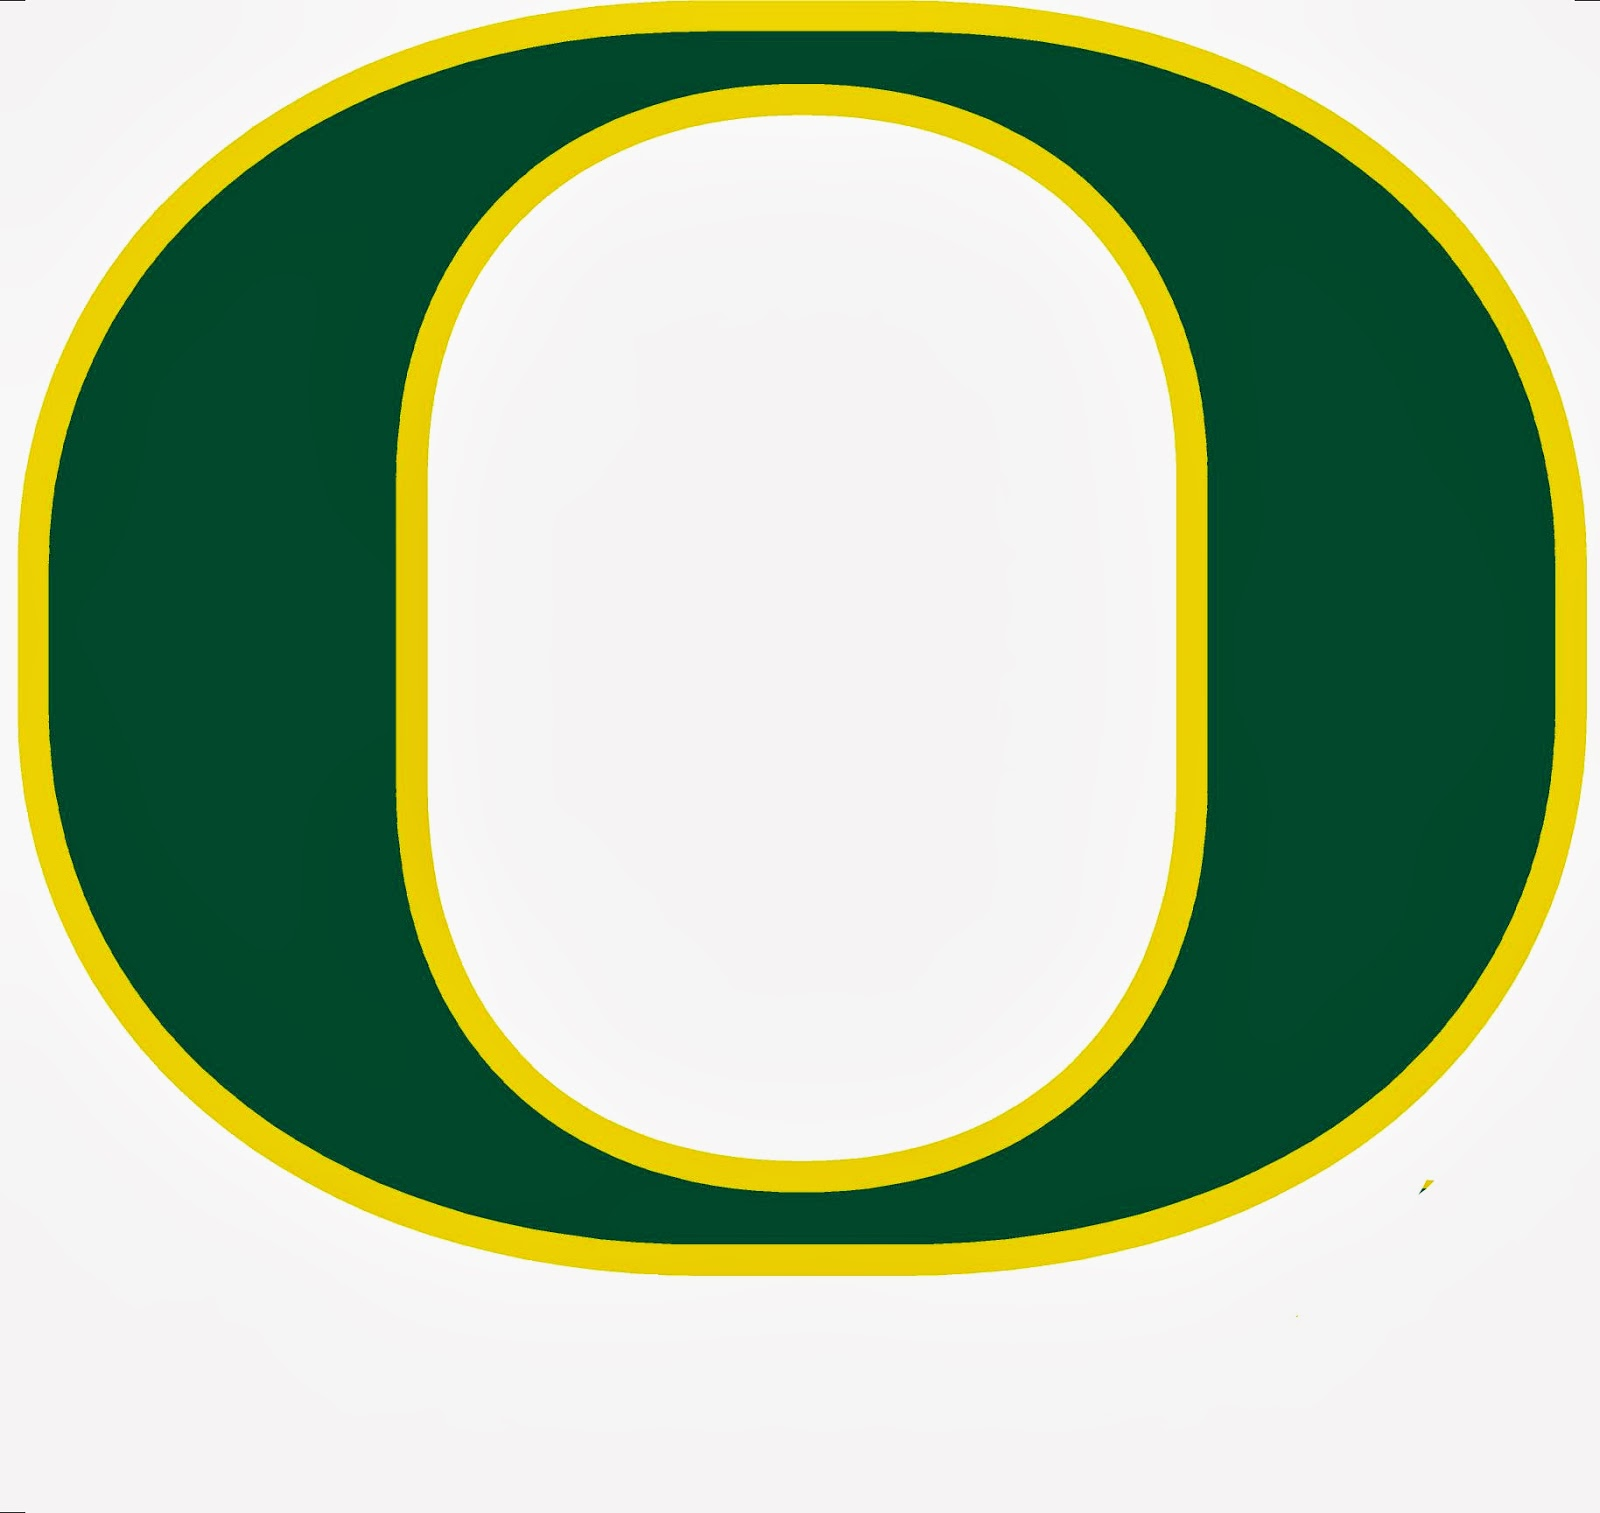 University of oregon Logos.